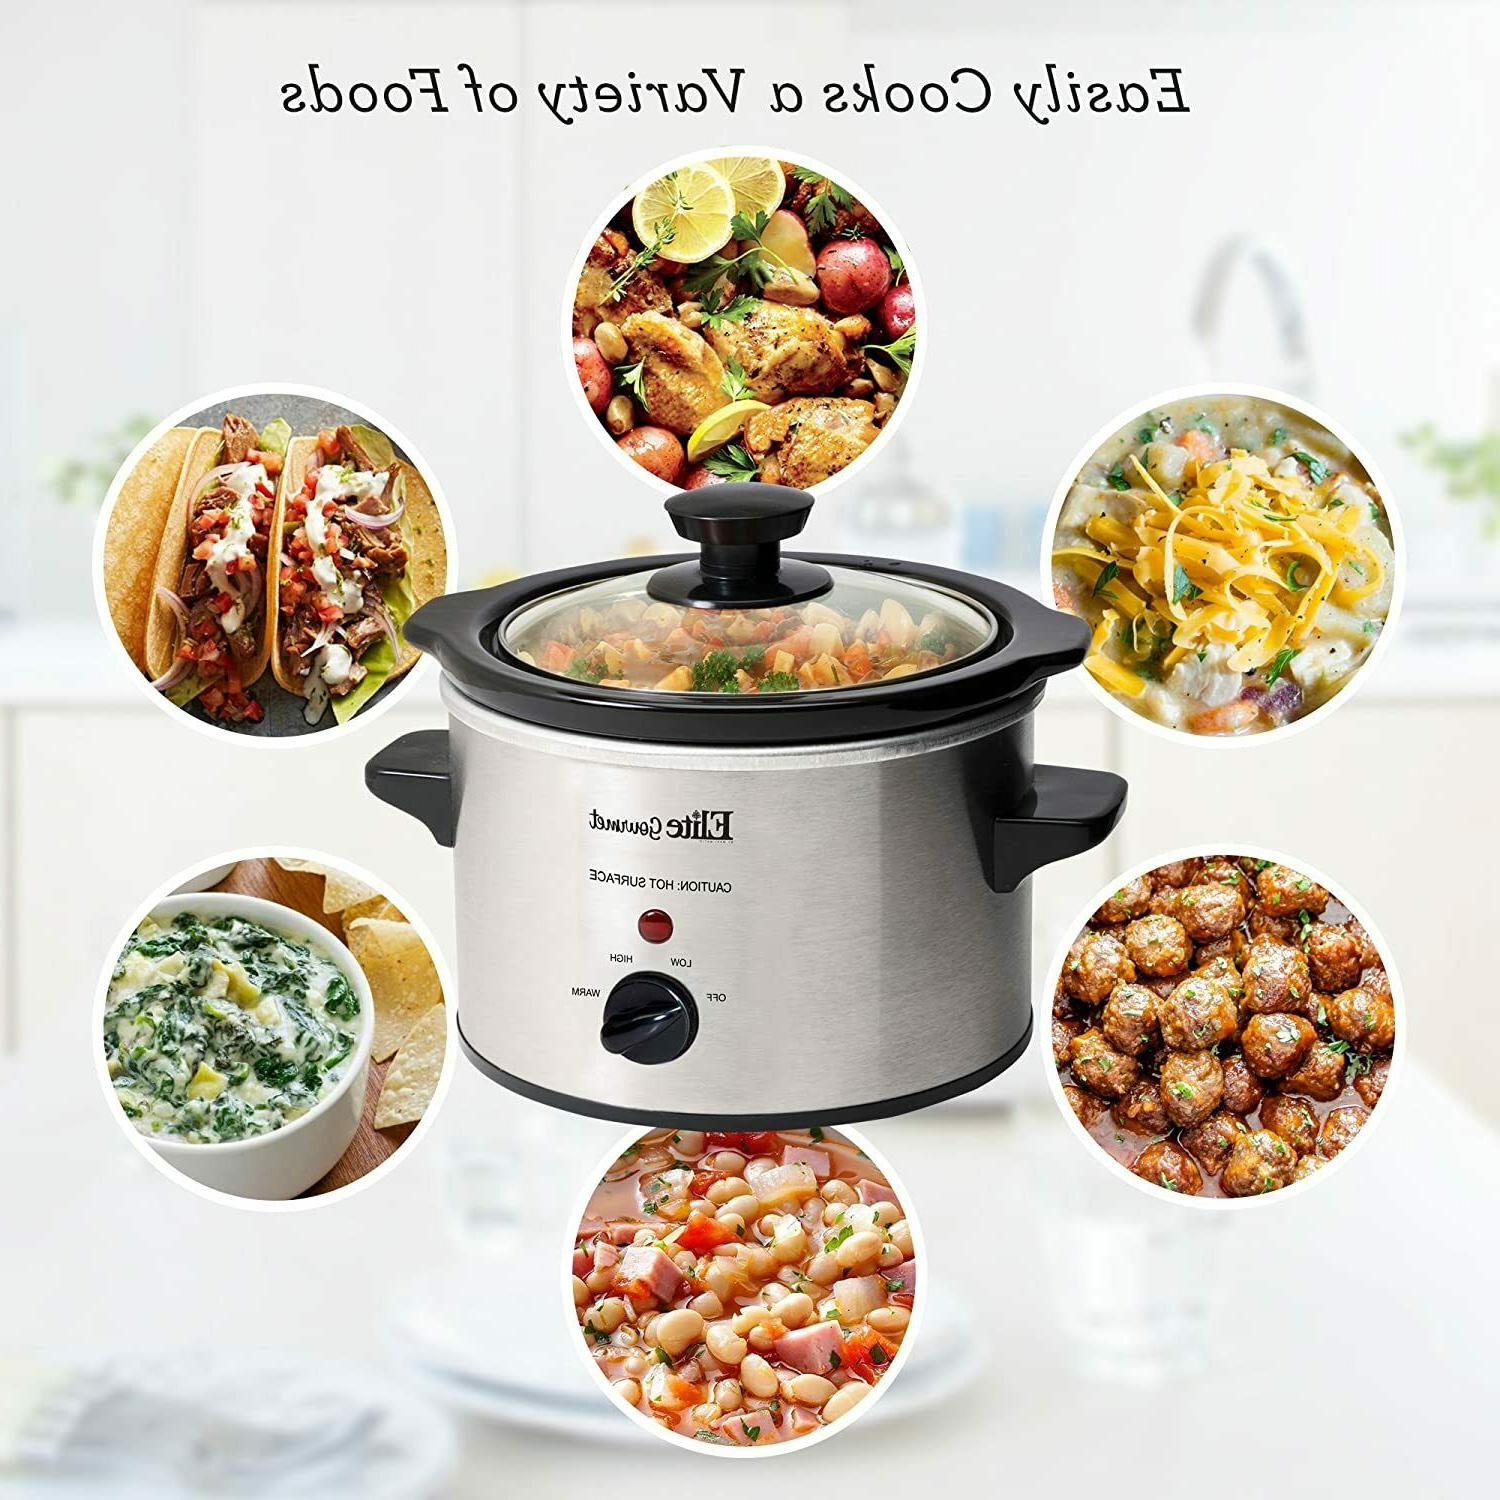 Small Slow Cooker Steel Crock Kitchen Appliance